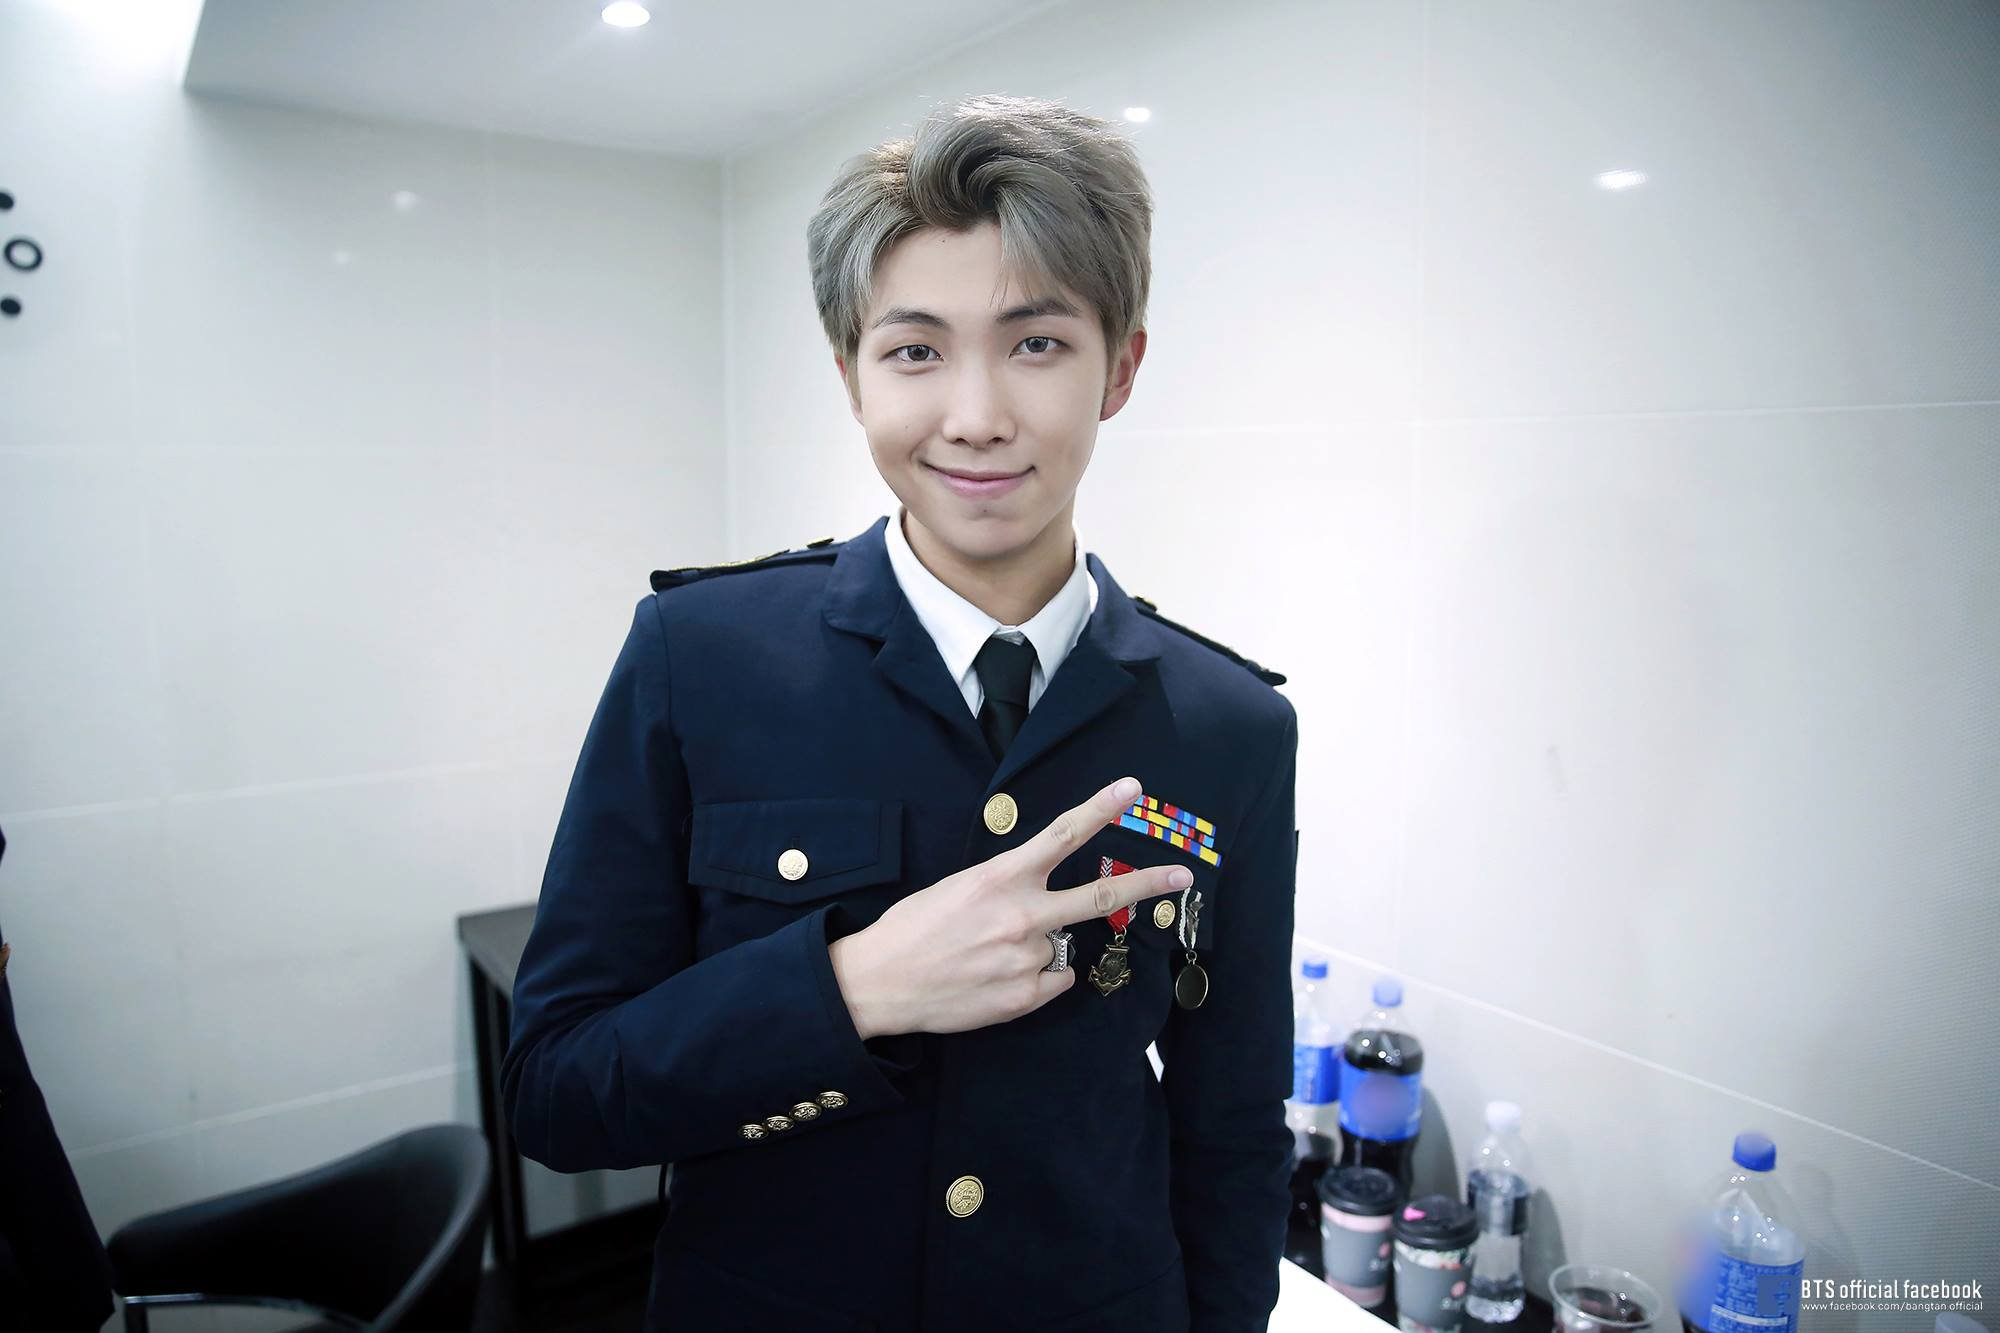 BTS's RM announces solo mixtape after being voted best leader in K-Pop Picture: RM METRO GRAB taken from: https://www.facebook.com/pg/bangtan.official/photos/?ref=page_internal Credit: BTS/Facebook